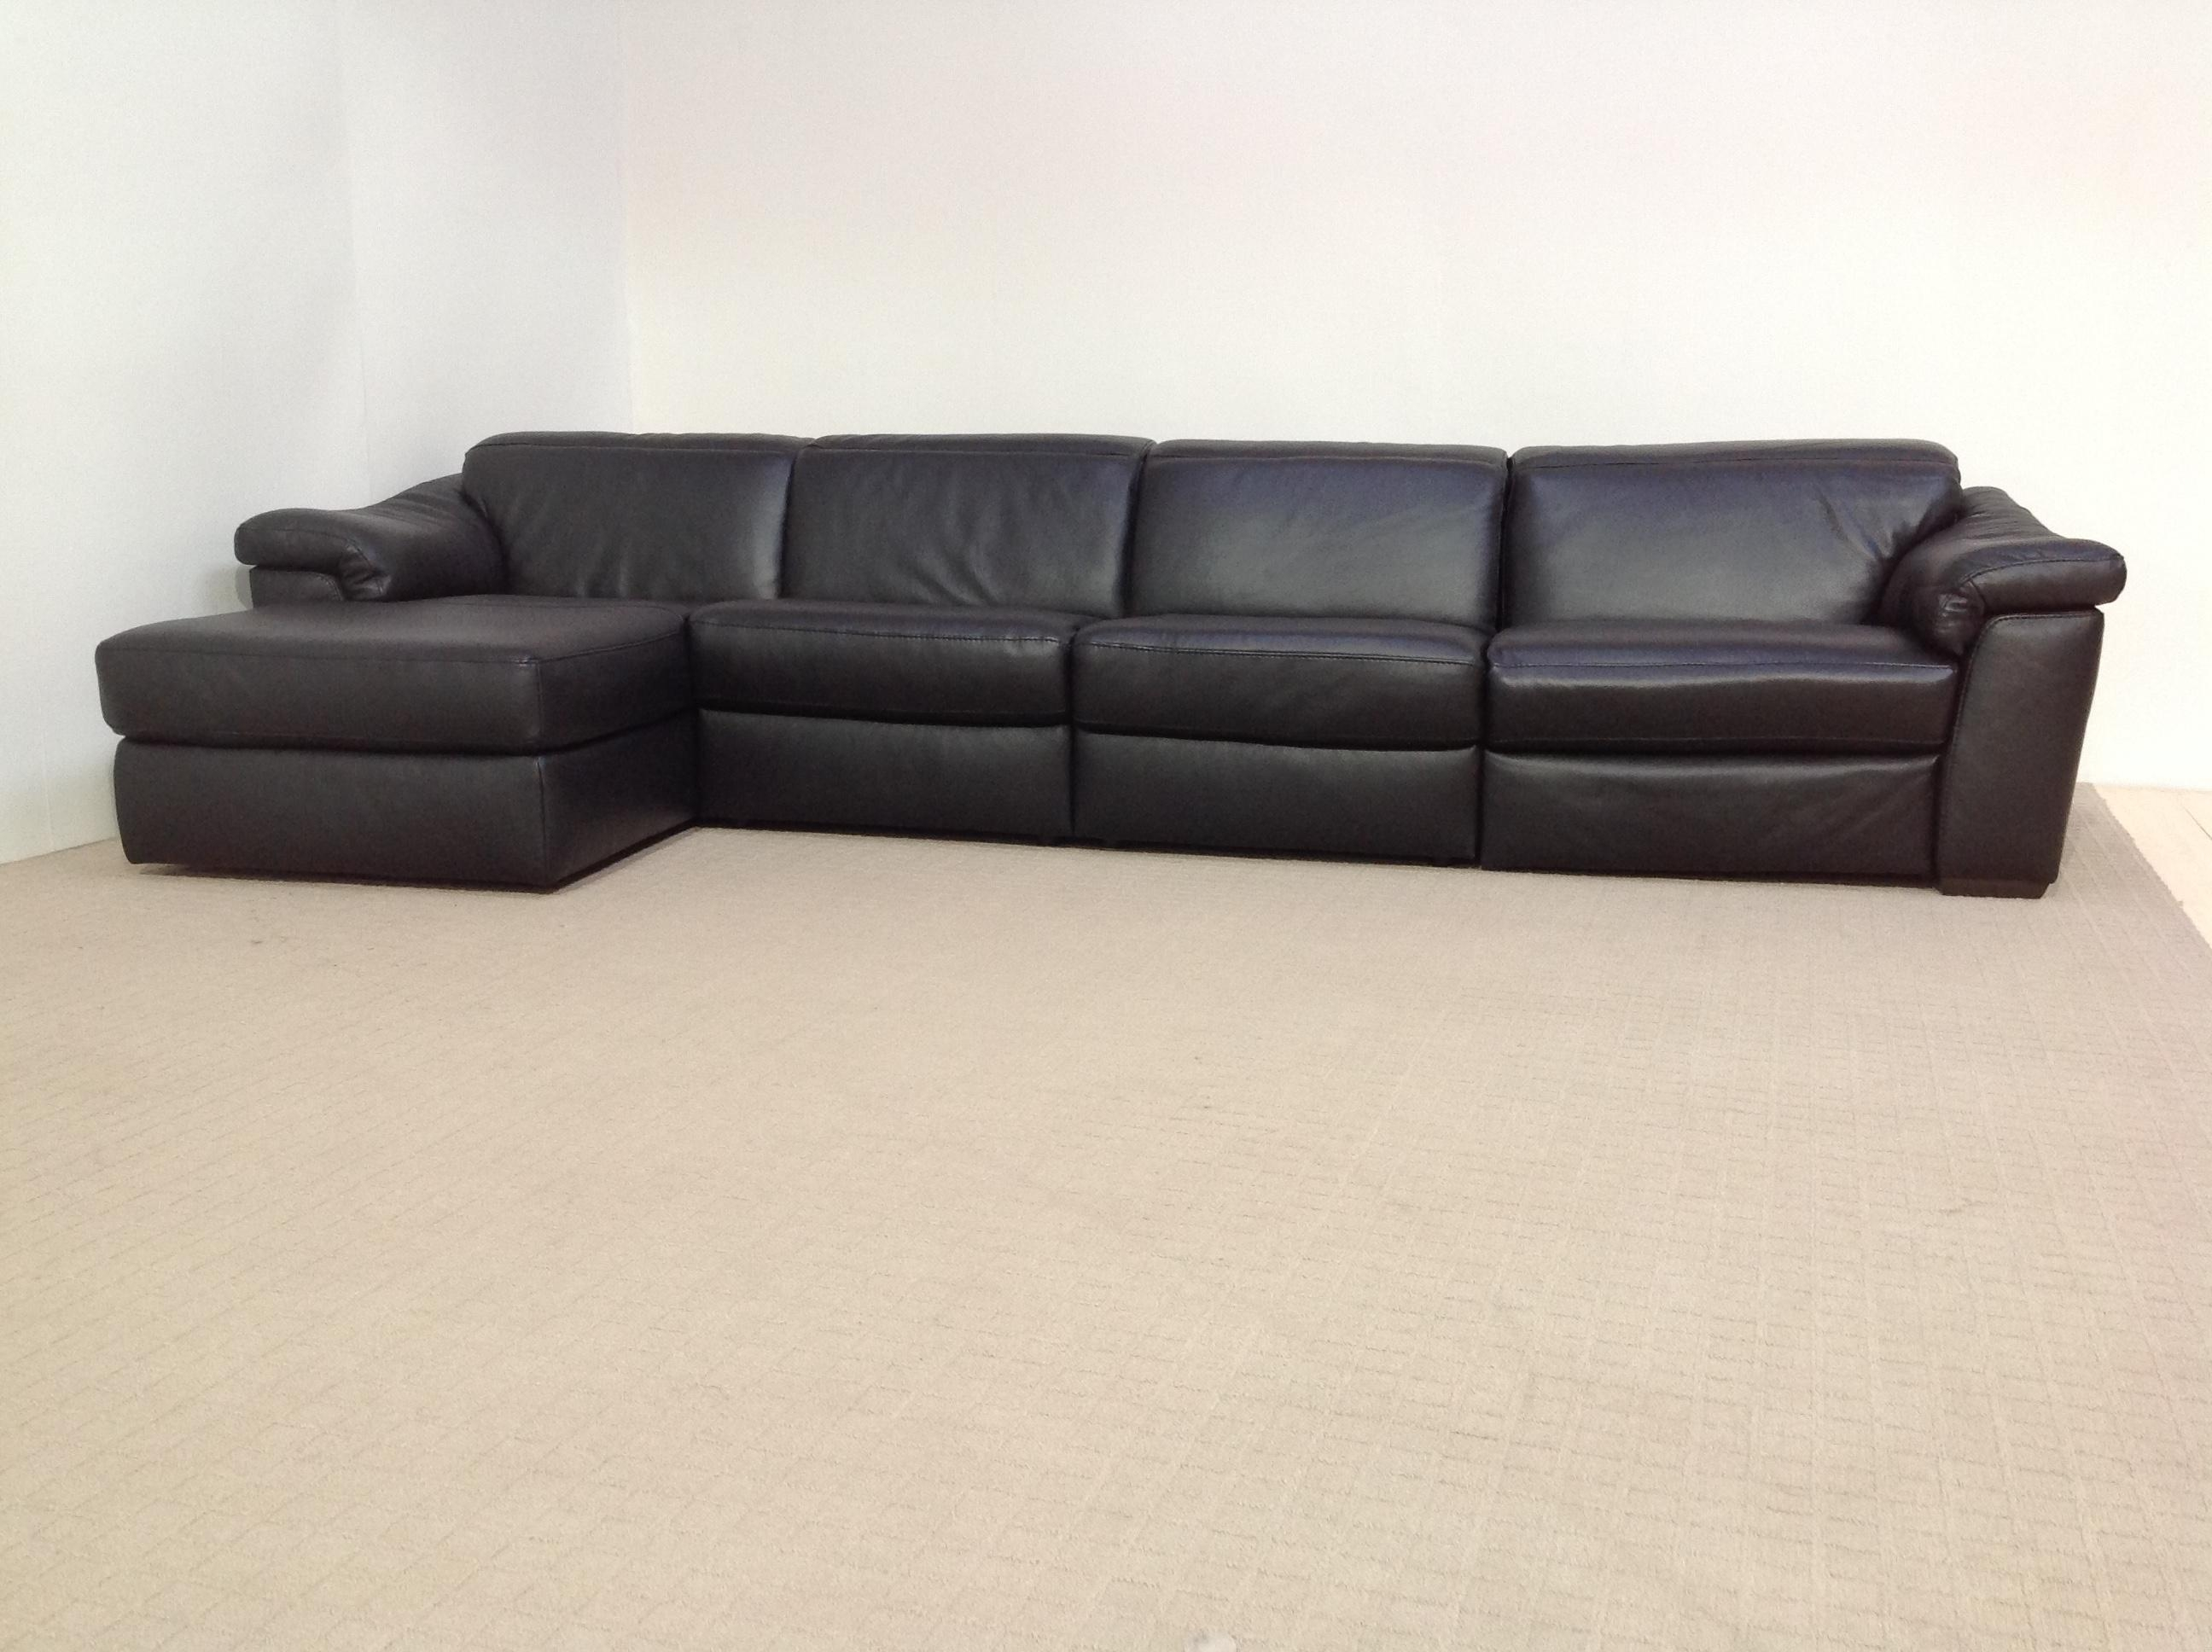 4 Seater Leather Sofas 33 With 4 Seater Leather Sofas Within 4 Seat Sofas (View 18 of 20)